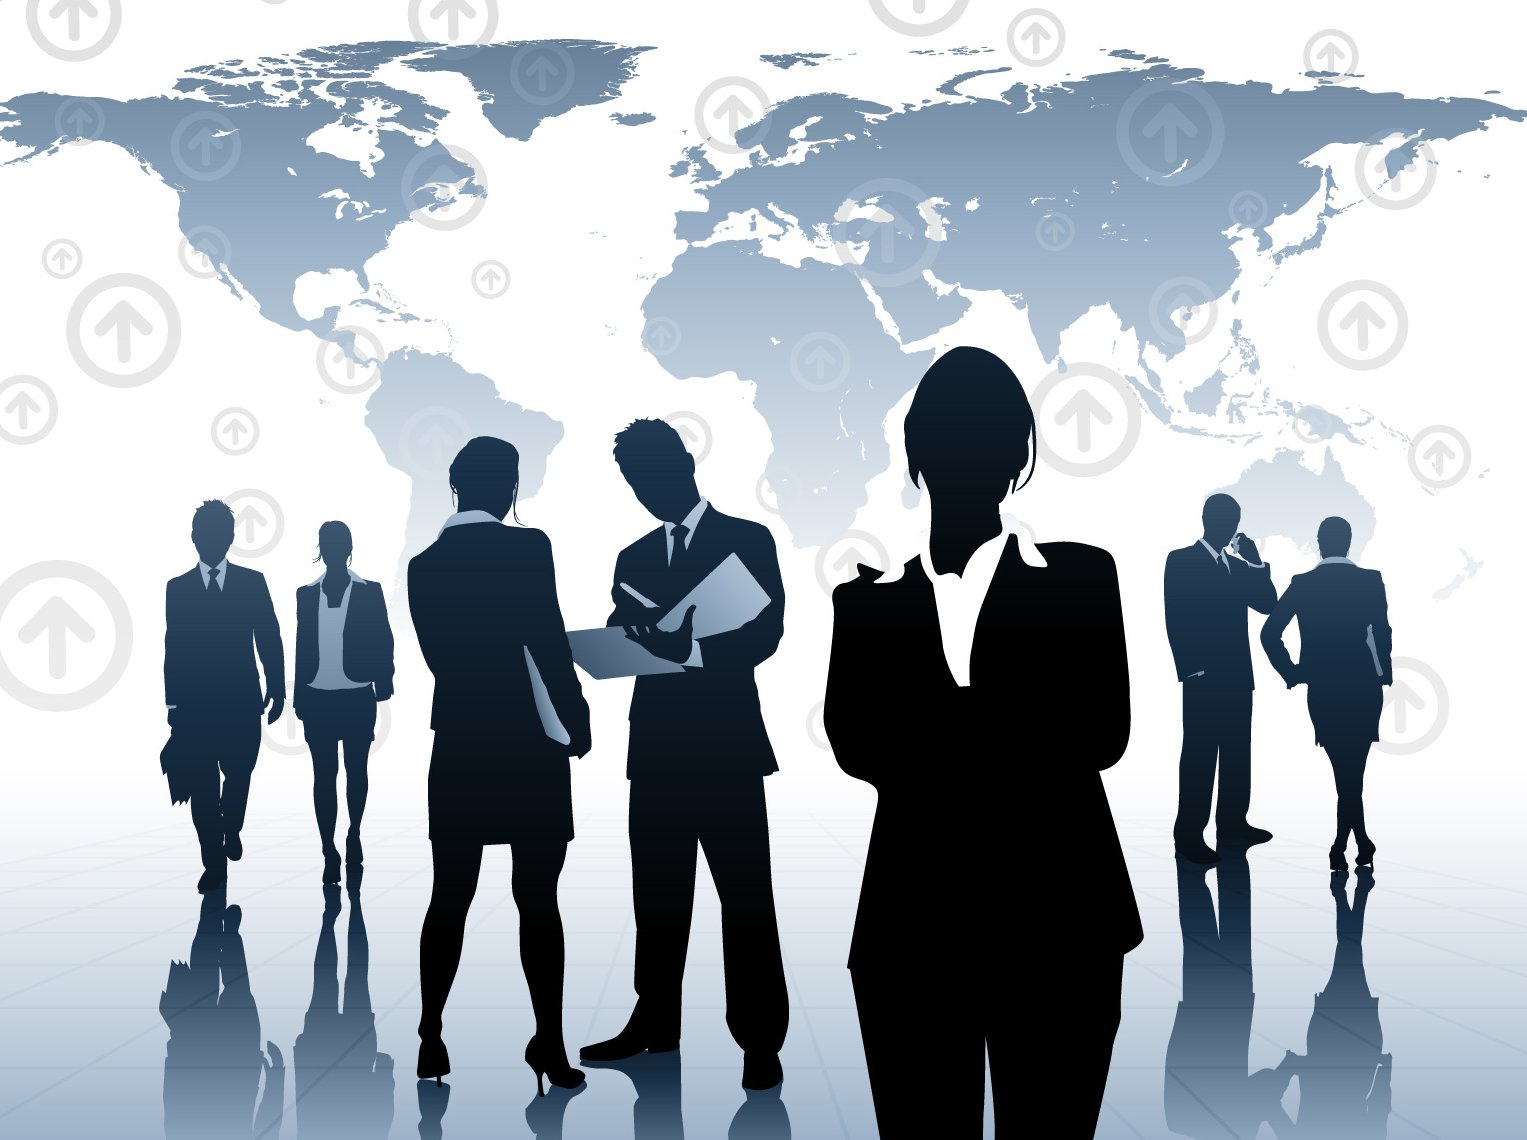 domestic manager vs international manager International business vs domestic business the process of conducting and managing international business operations is very complex than undertaking domestic business due to variations in political, social, cultural and economic environments across countries, business organization has difficulty in extending their domestic business strategy to foreign markets.